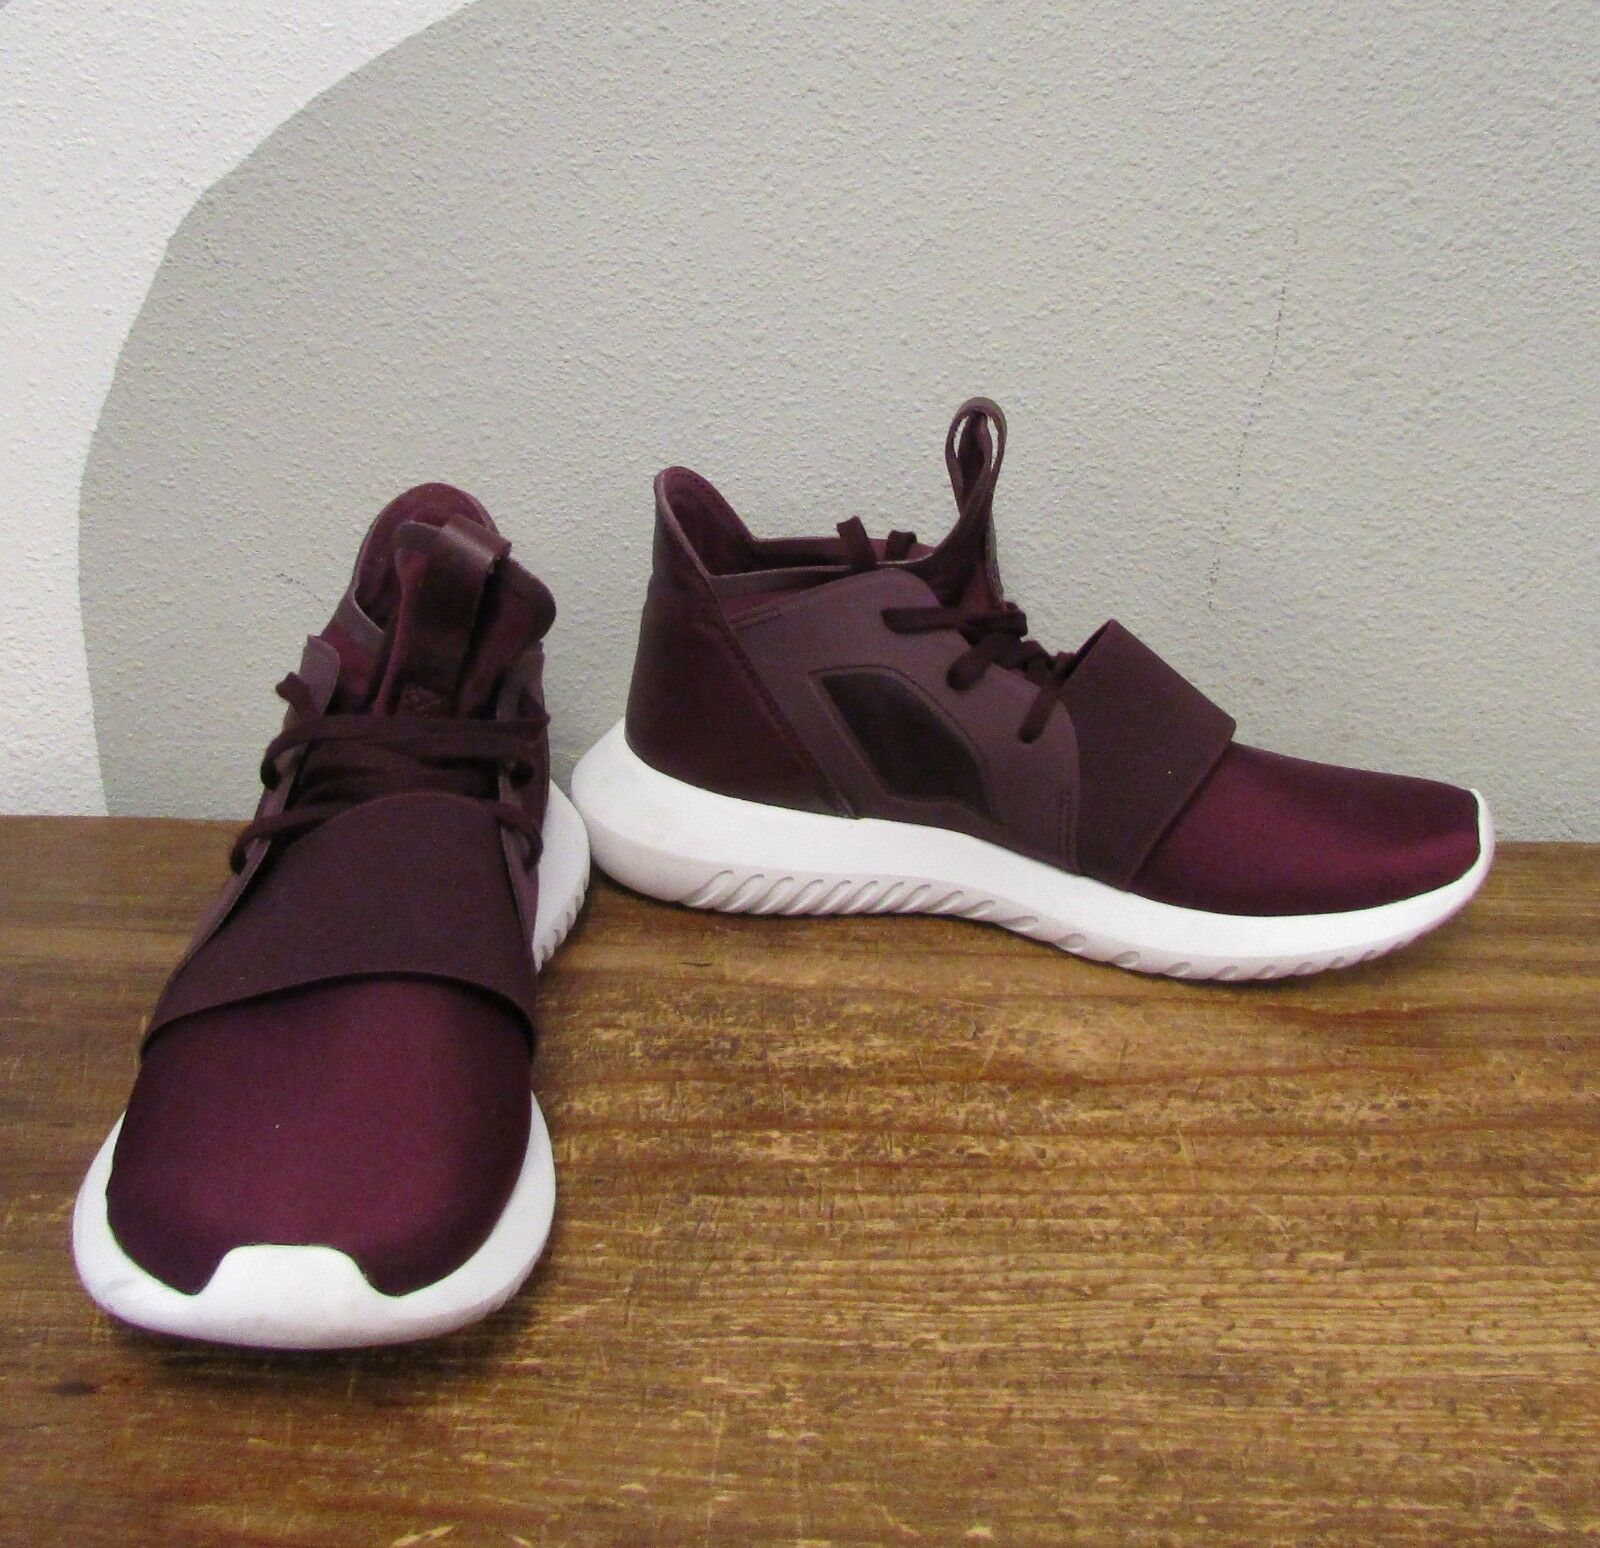 ADIDAS ORIGINALS TUBULAR Women's Viral 2.0 Purple Lace Up Athletic Sneakers - 7